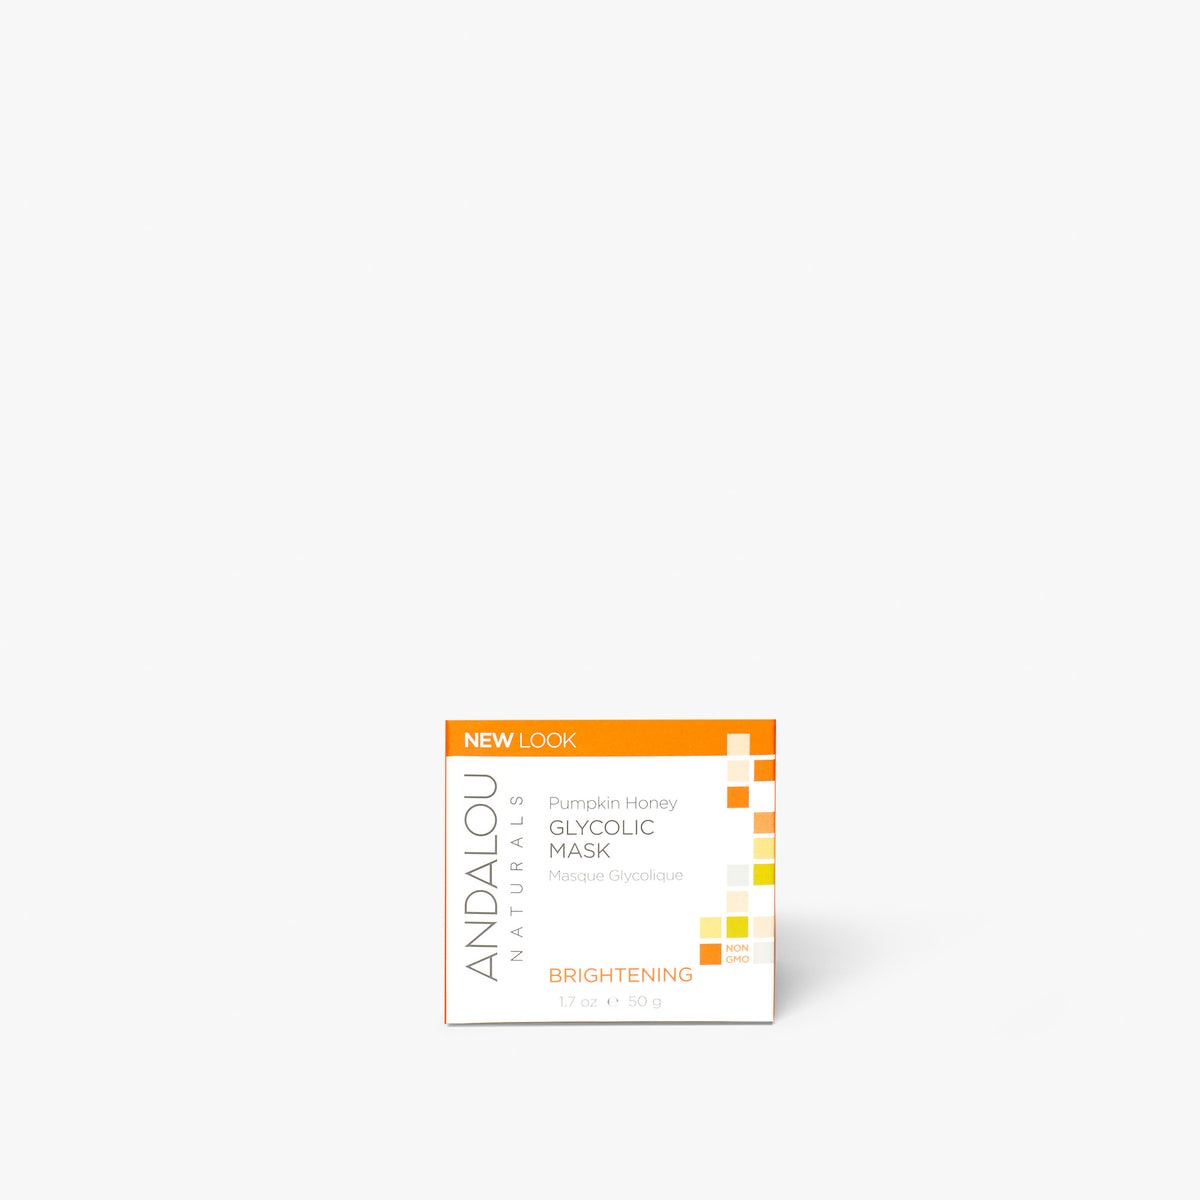 Brightening Pumpkin Honey Glycolic Mask carton